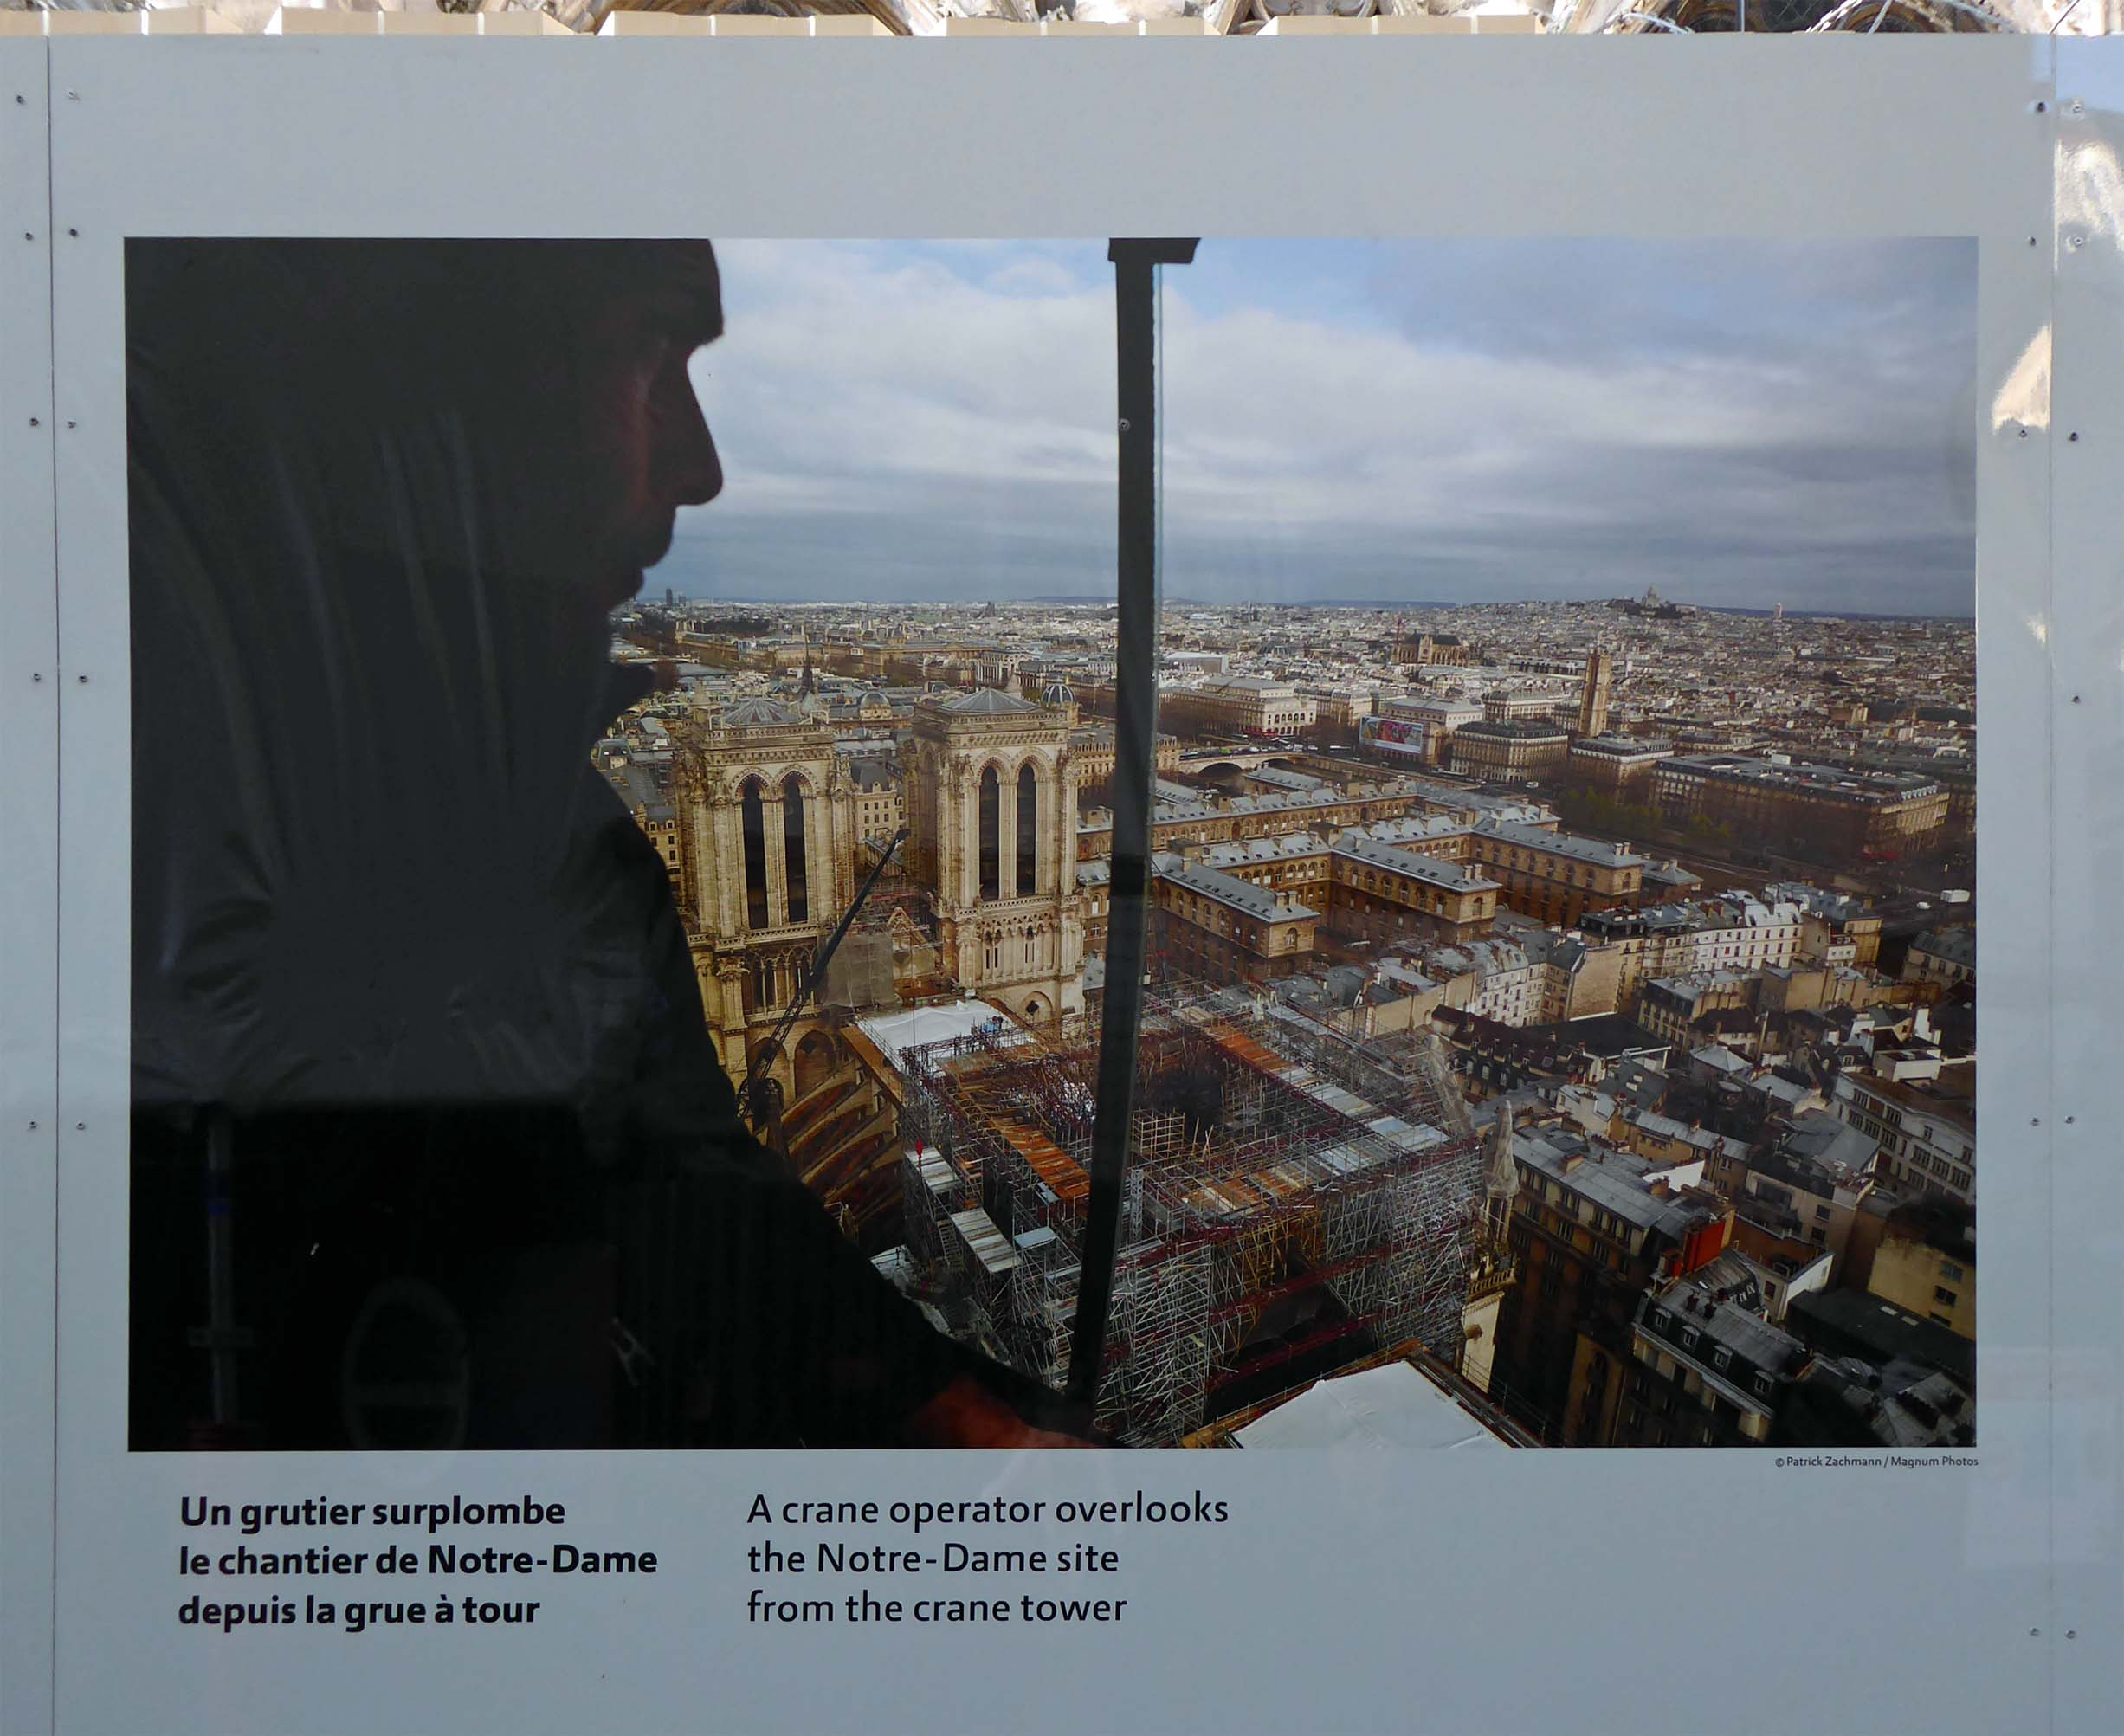 Photo of a man looking down on a city